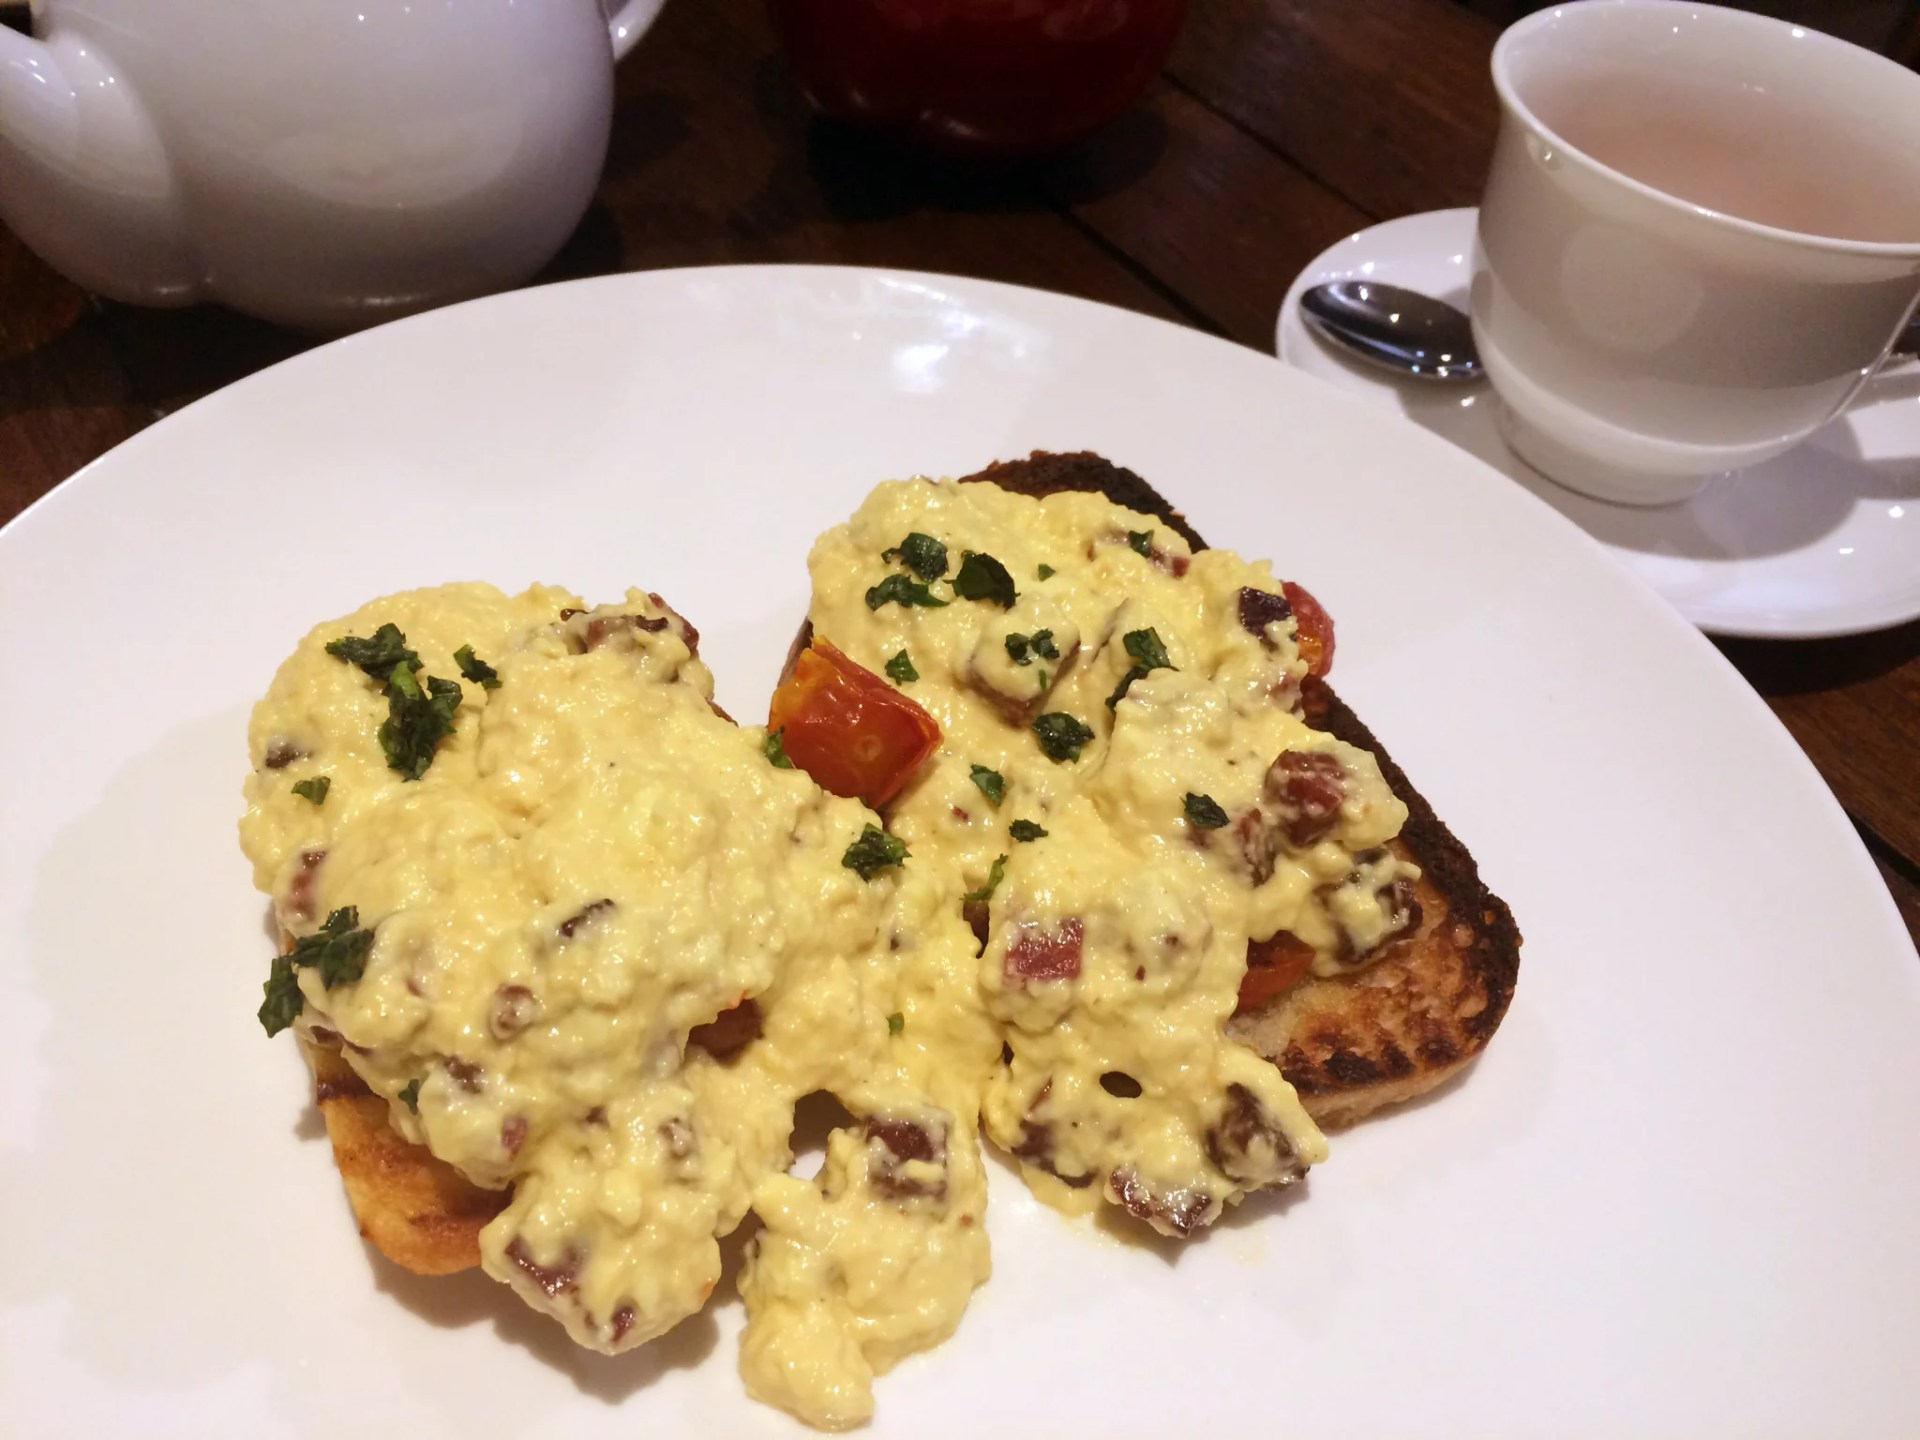 Balearic - Sourdough toast topped with crushed tomatoes and chorizo scrambled eggs